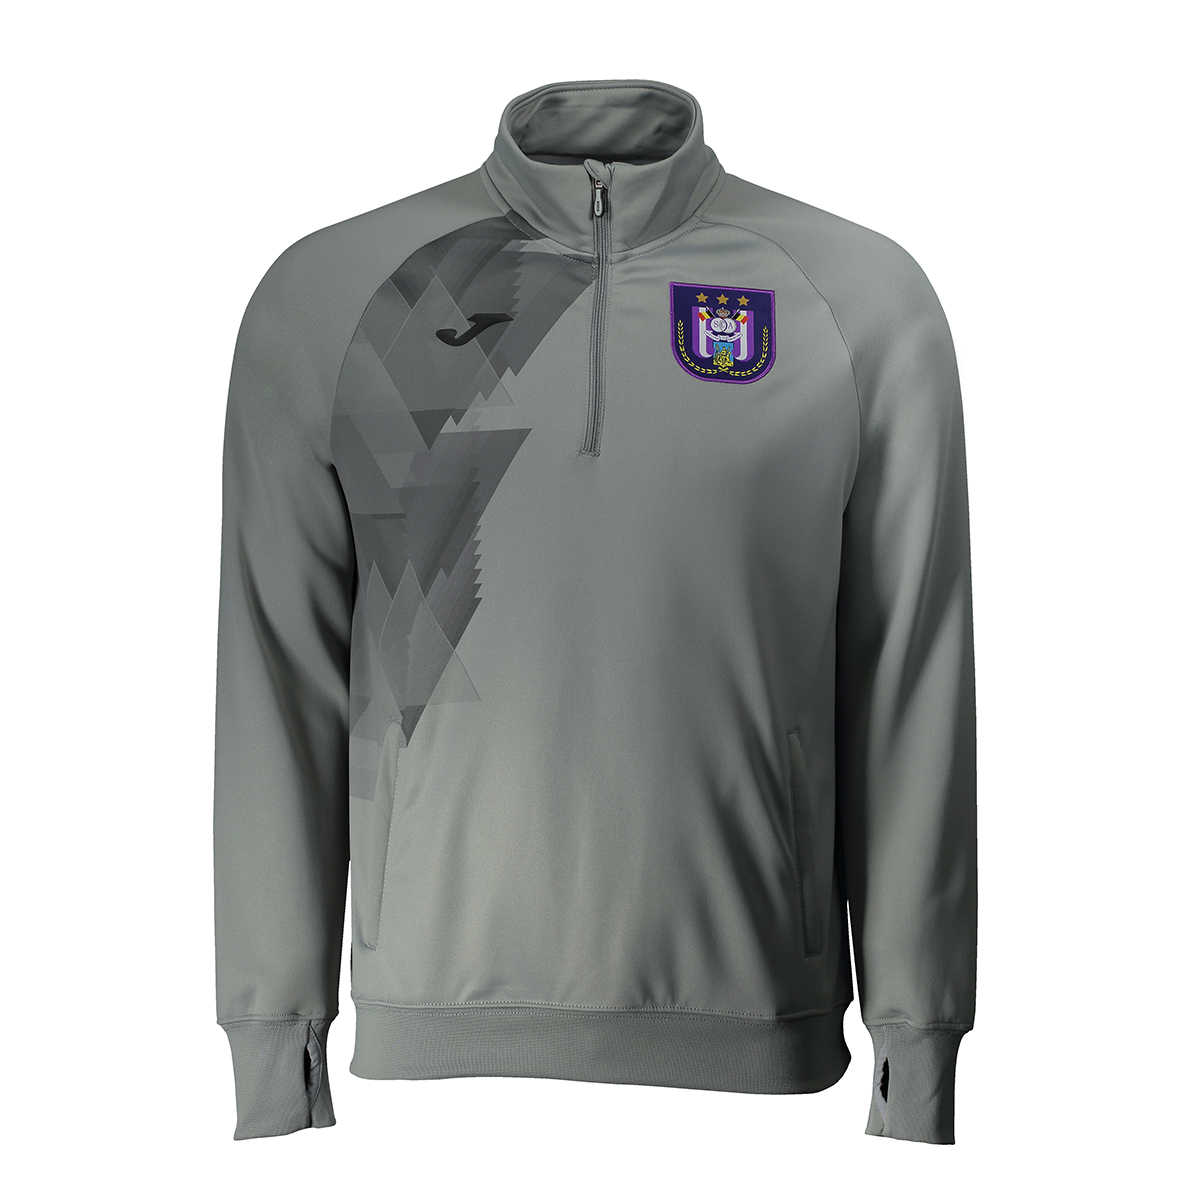 RSCA Trainingtop With Zipper 2020/2021